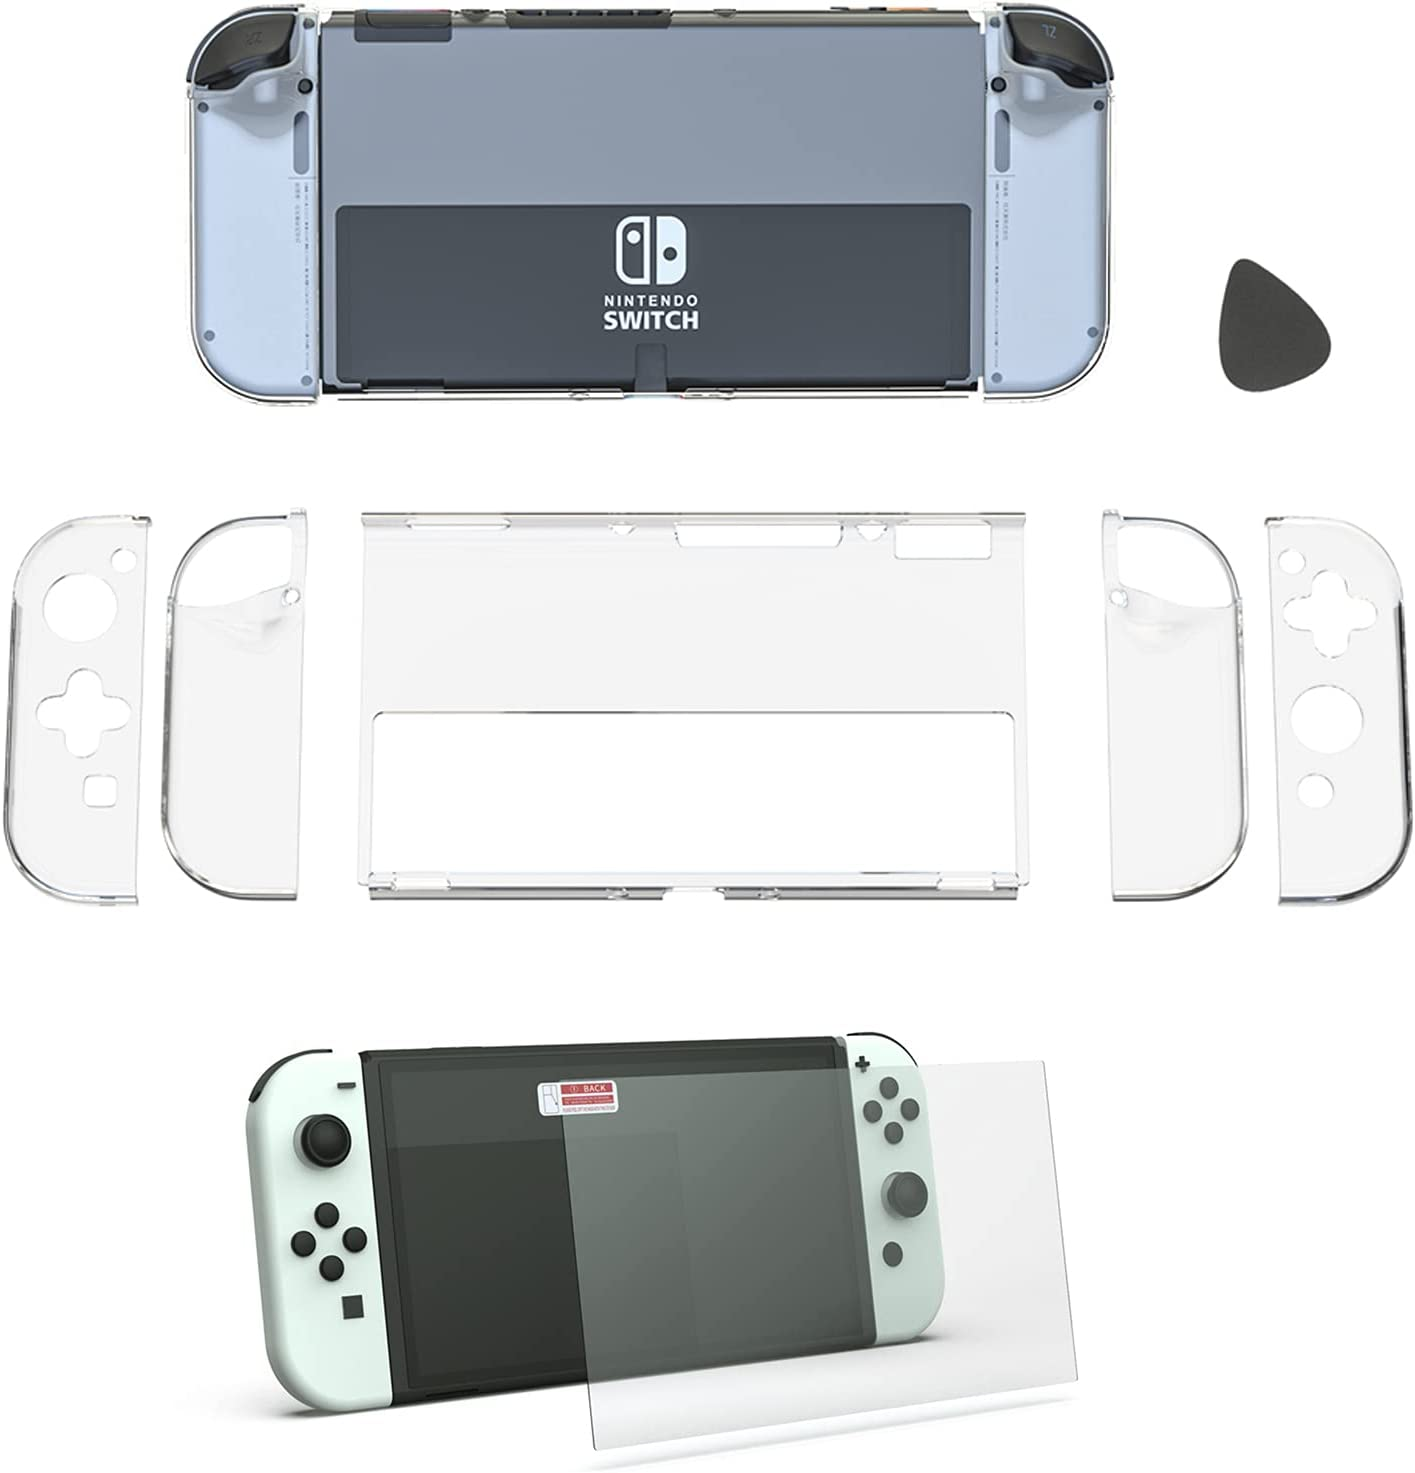 Switch OLED Protective Case G Image Product Bargain sale Tempered 5 ☆ popular